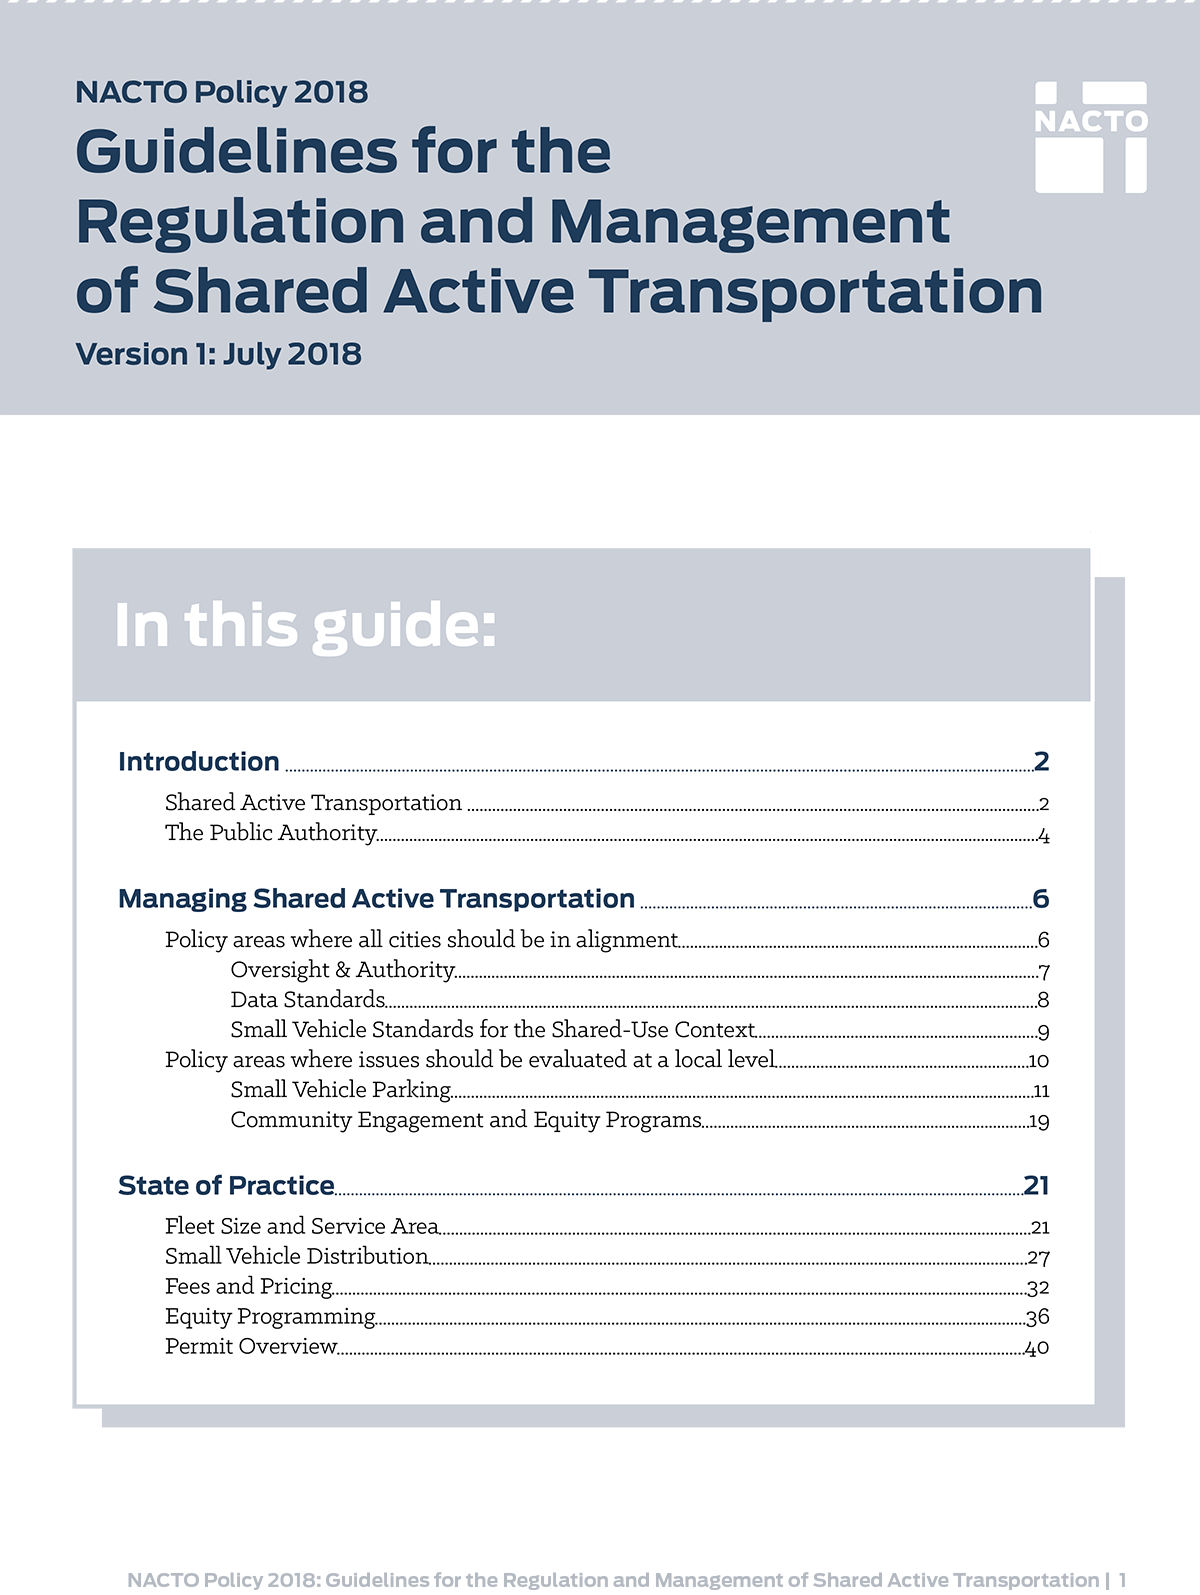 NACTO Guidelines for the Regulation and Management of Shared